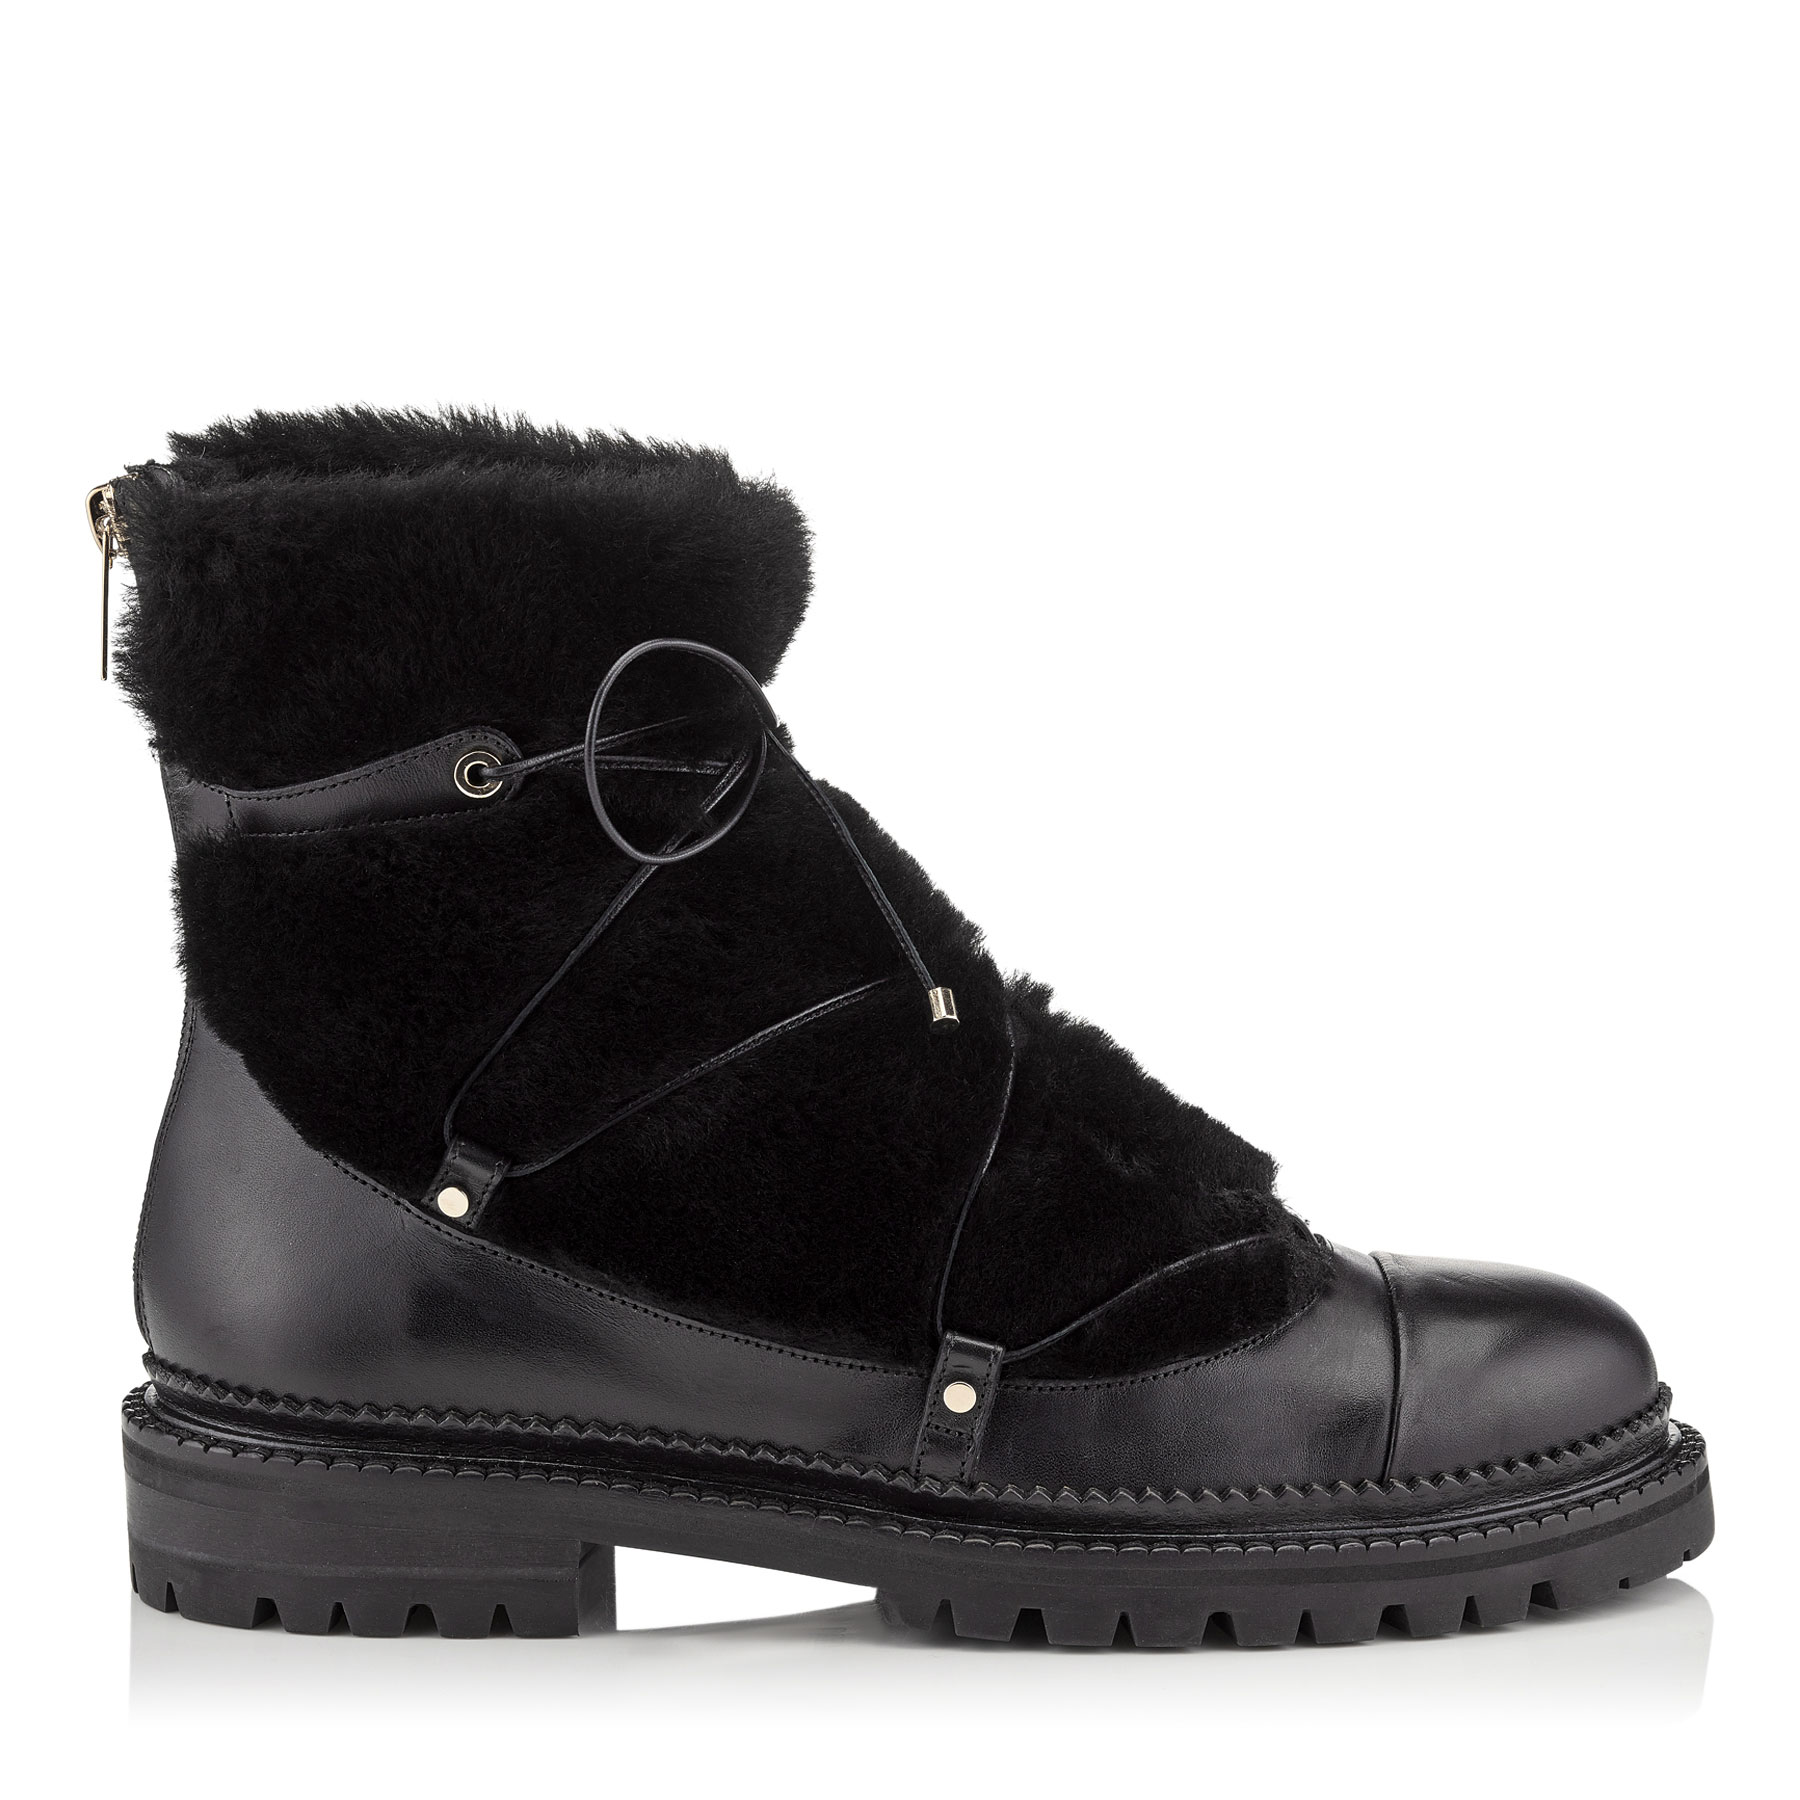 DARCIE FLAT Black Leather Boots with Shearling by Jimmy Choo